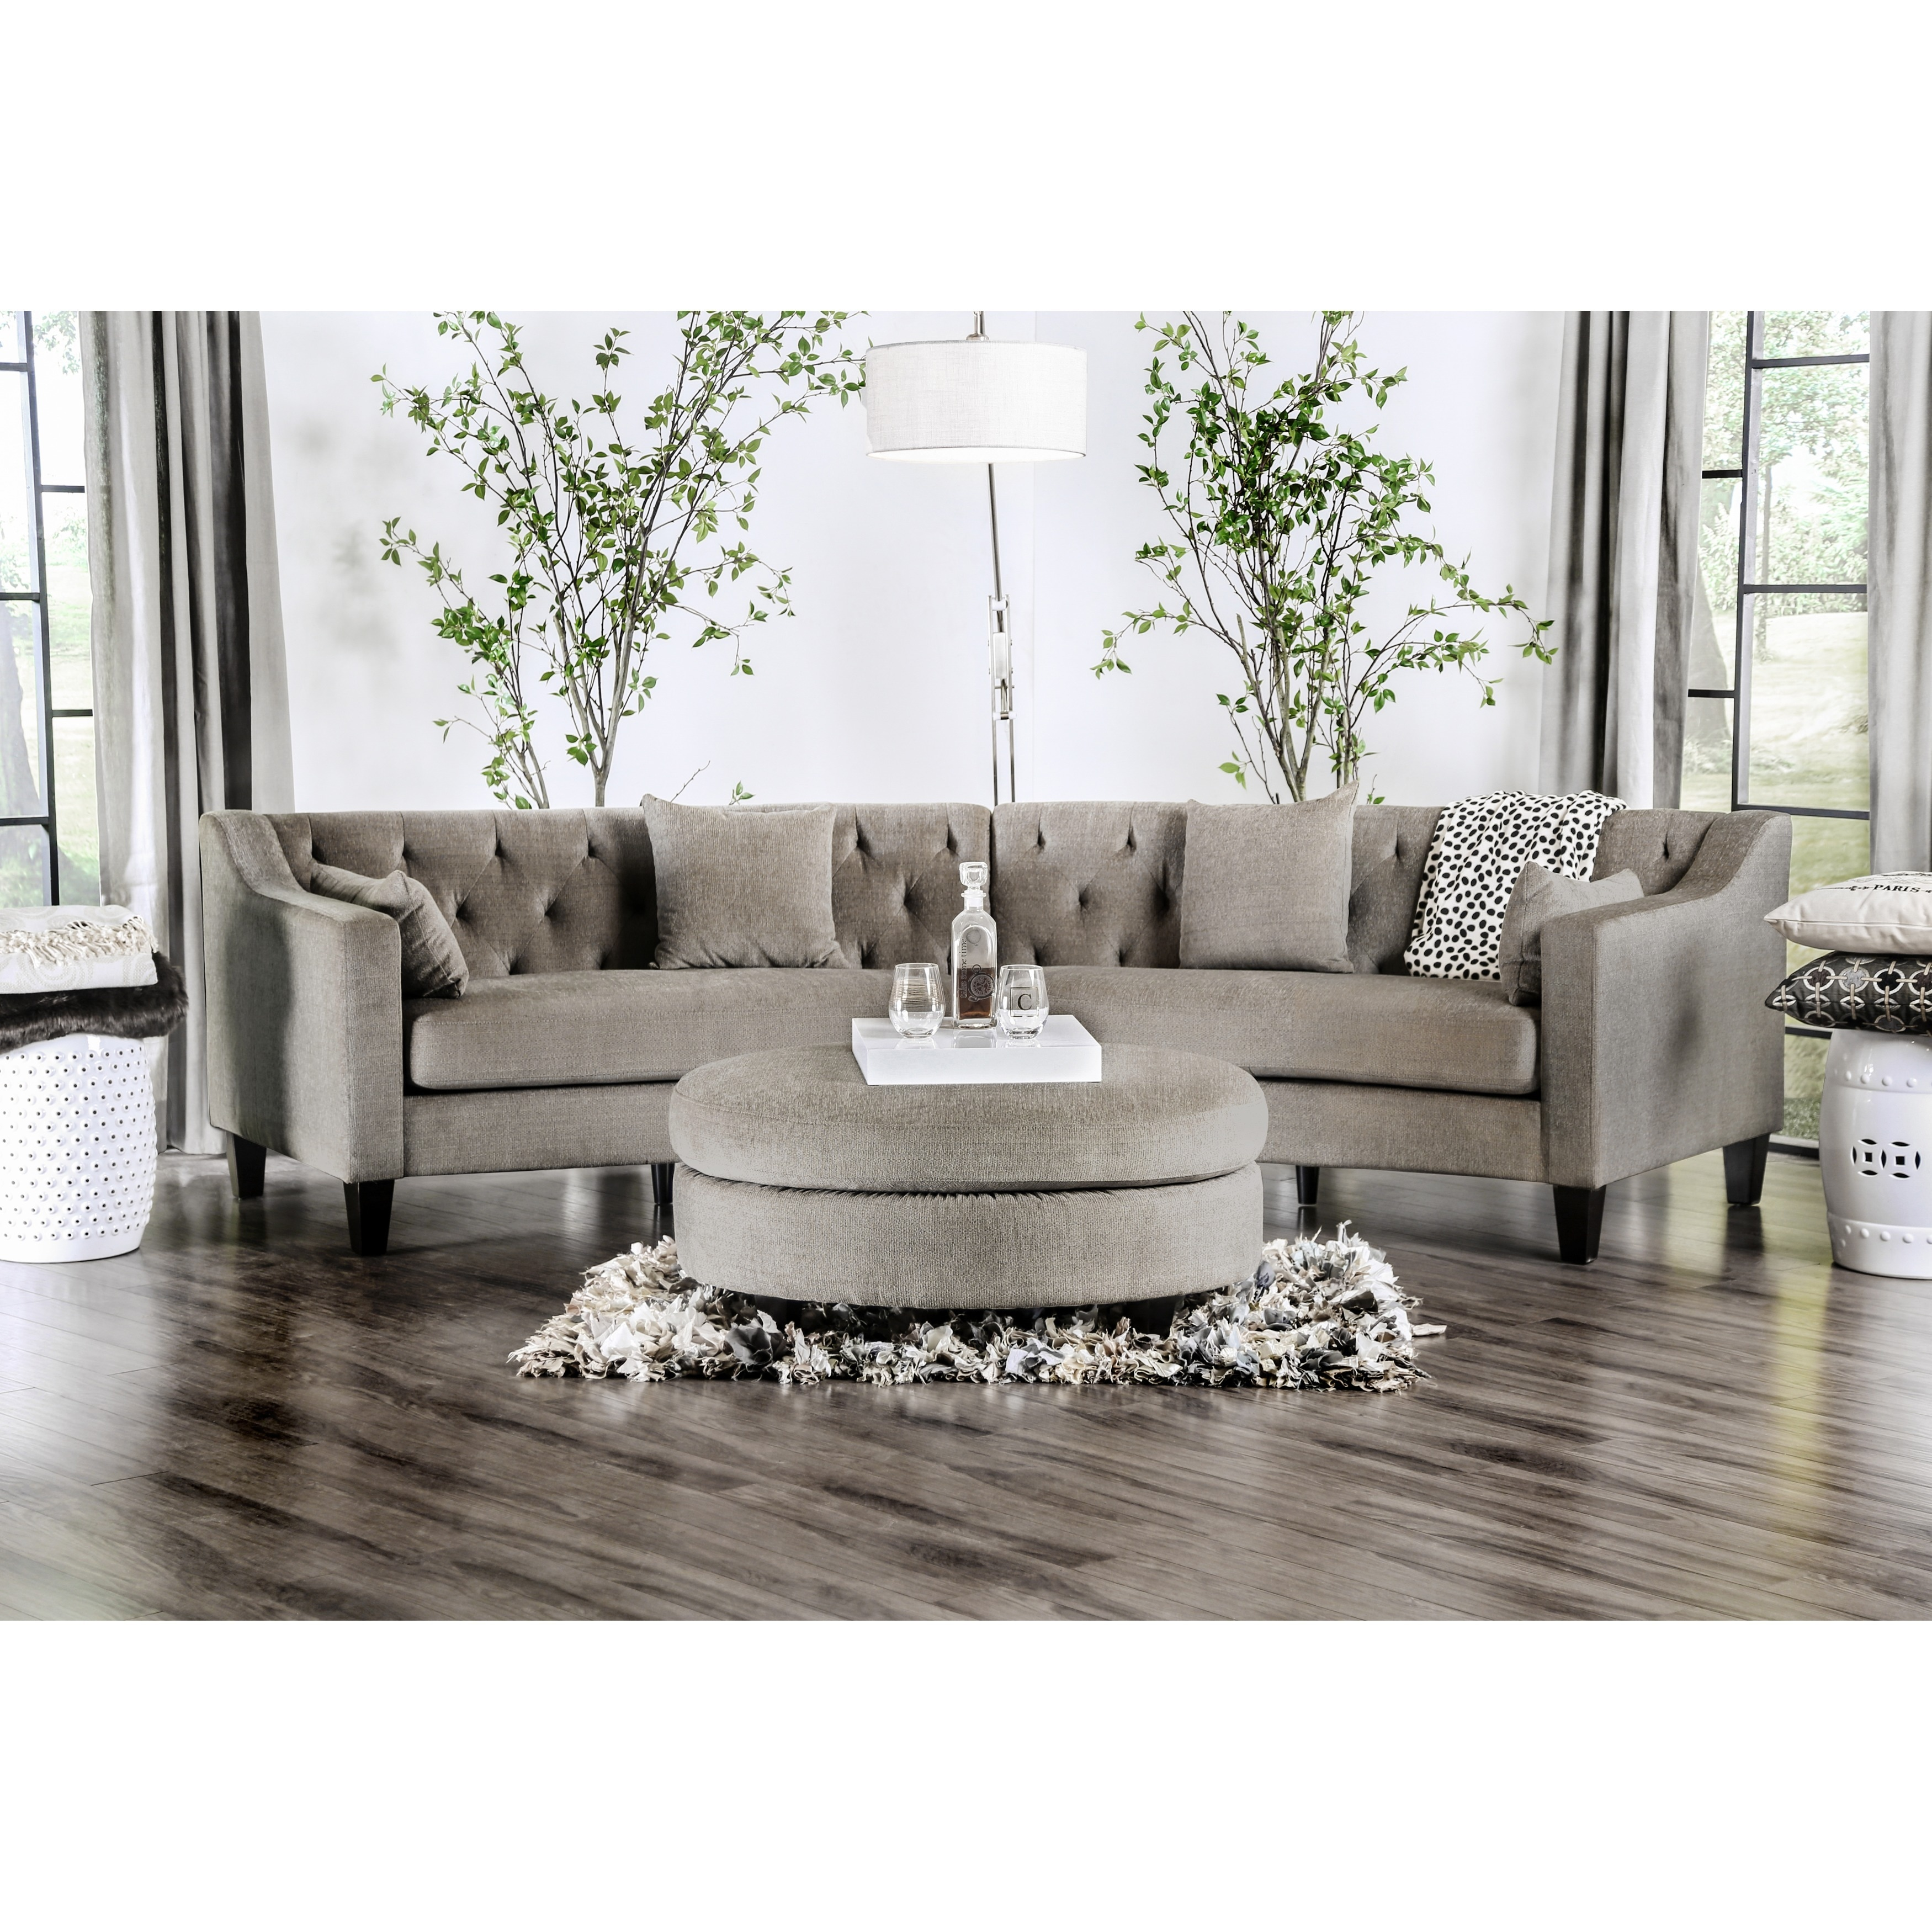 Aretha Contemporary Grey Tufted Rounded Sectional Sofa by...